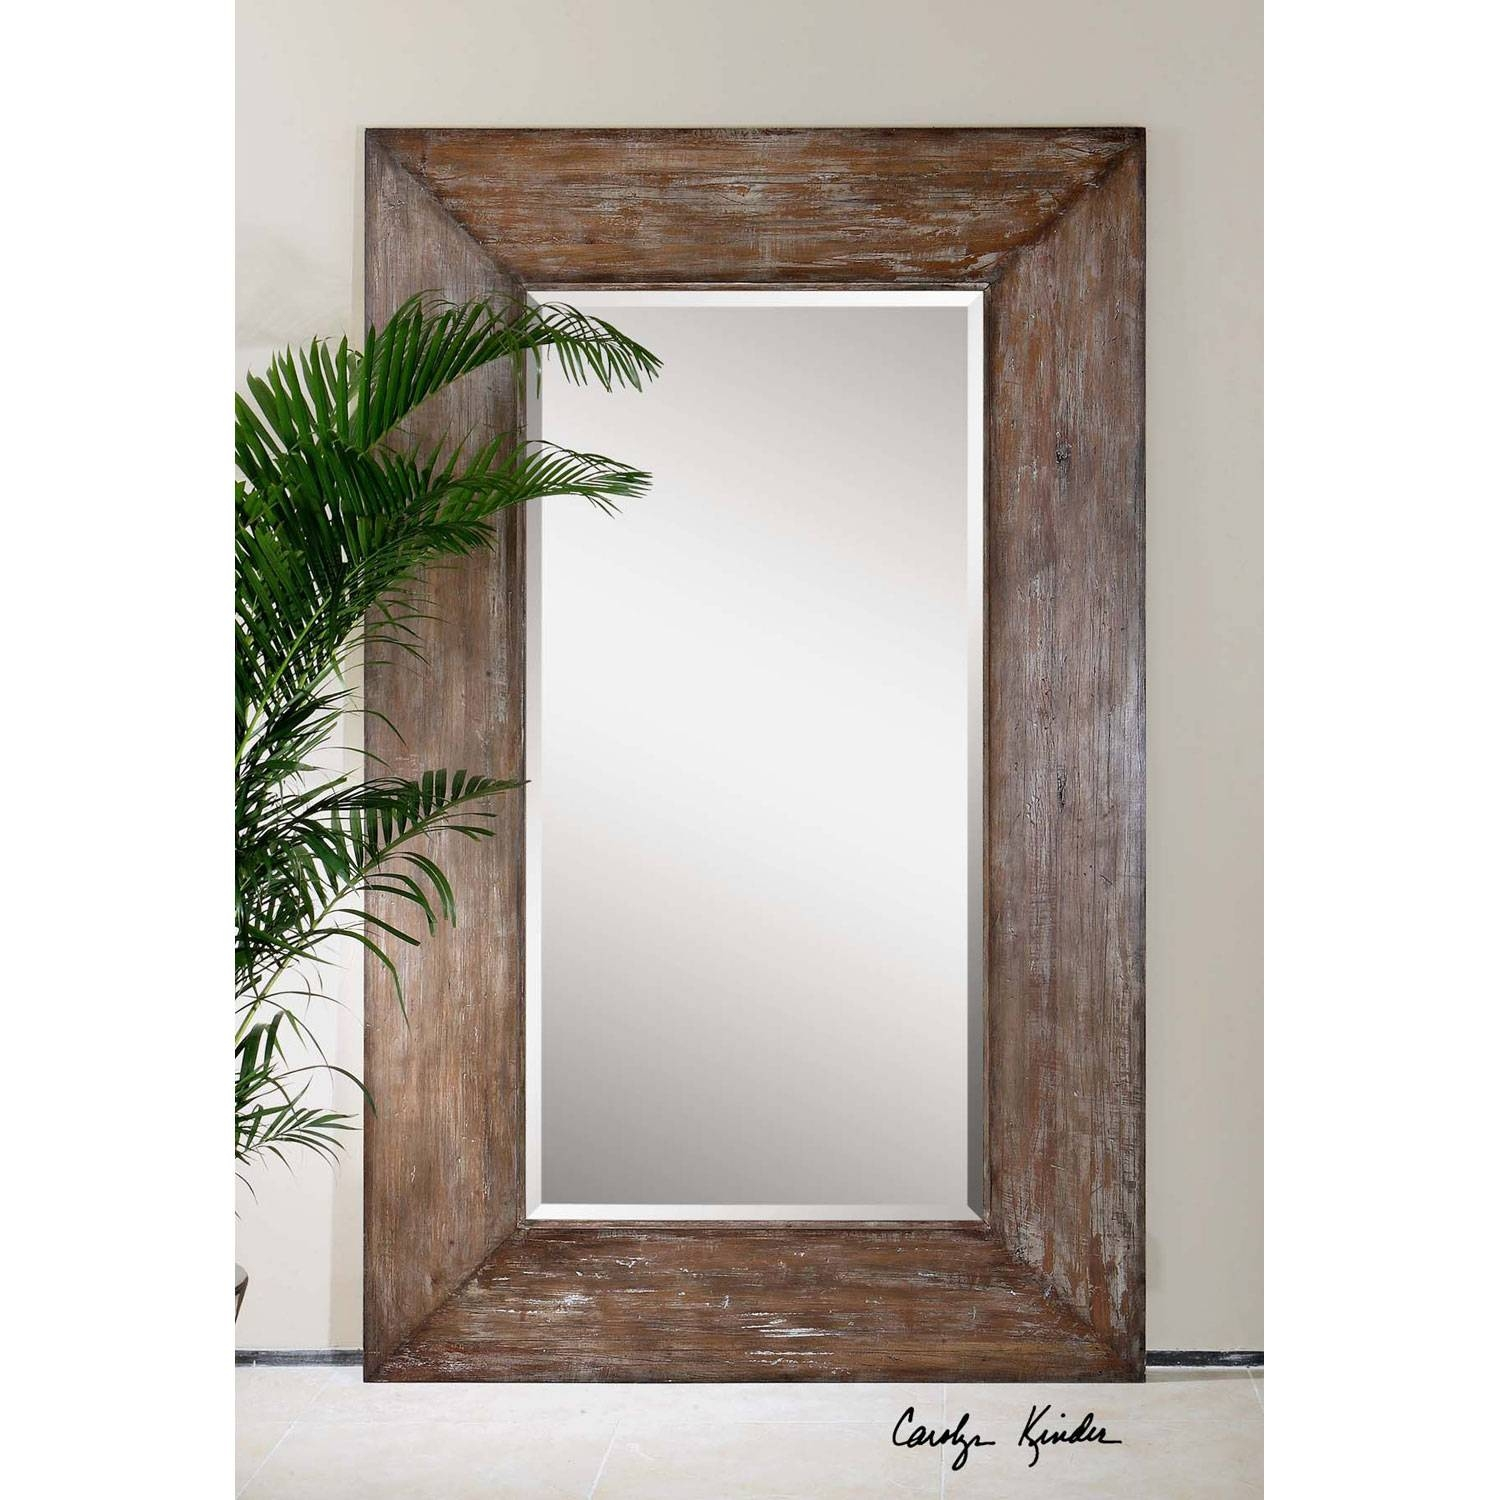 Langford Large Mirror Uttermost Wall Mirror Mirrors Home Decor in Large Mirrors (Image 16 of 25)